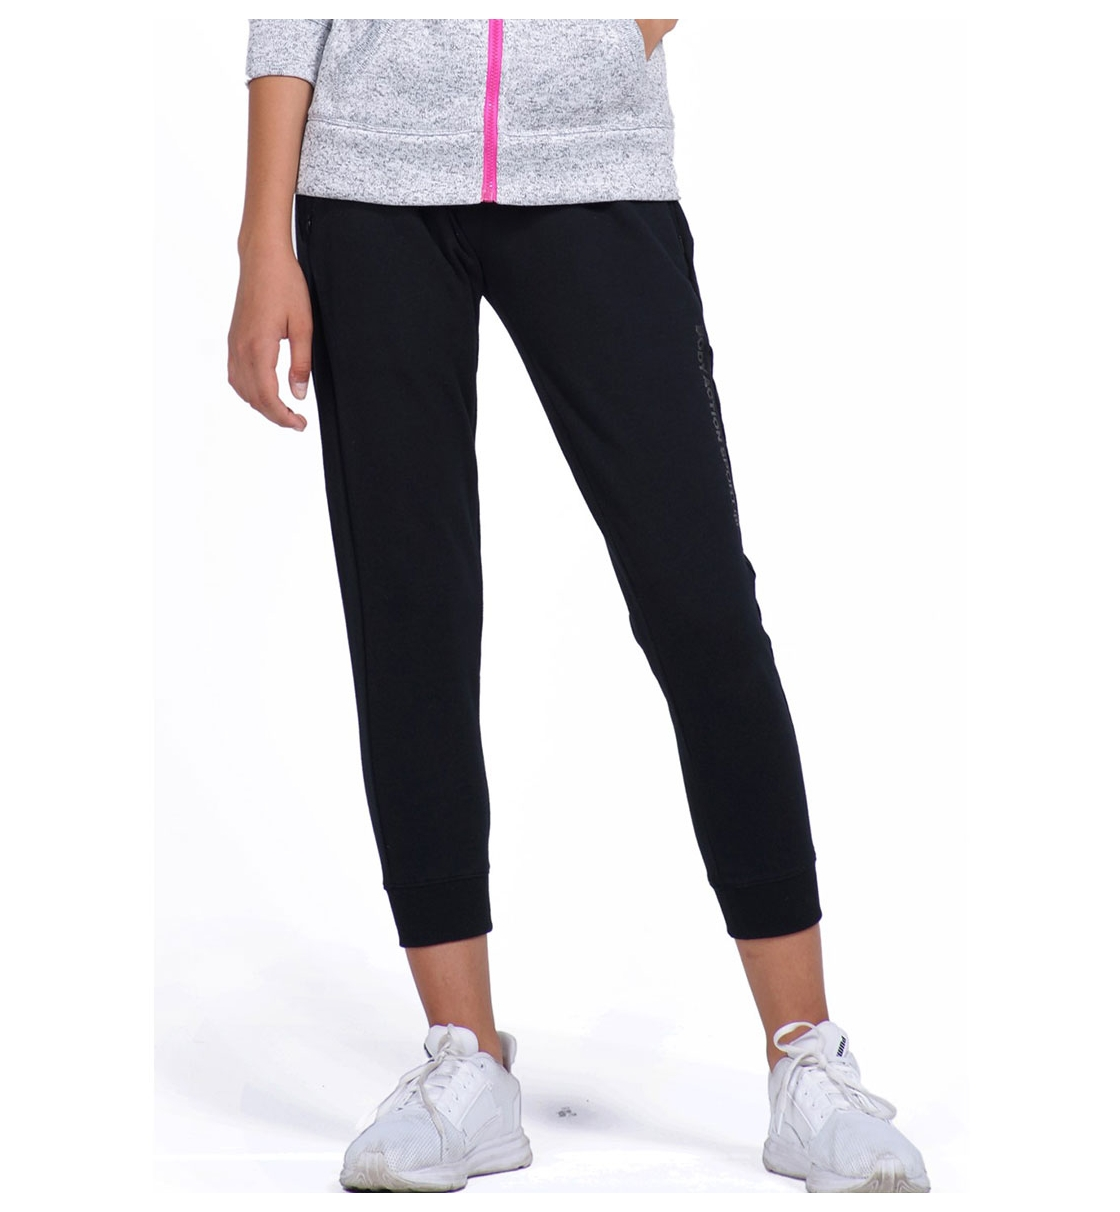 Body Action Fw19 Women Active Pants